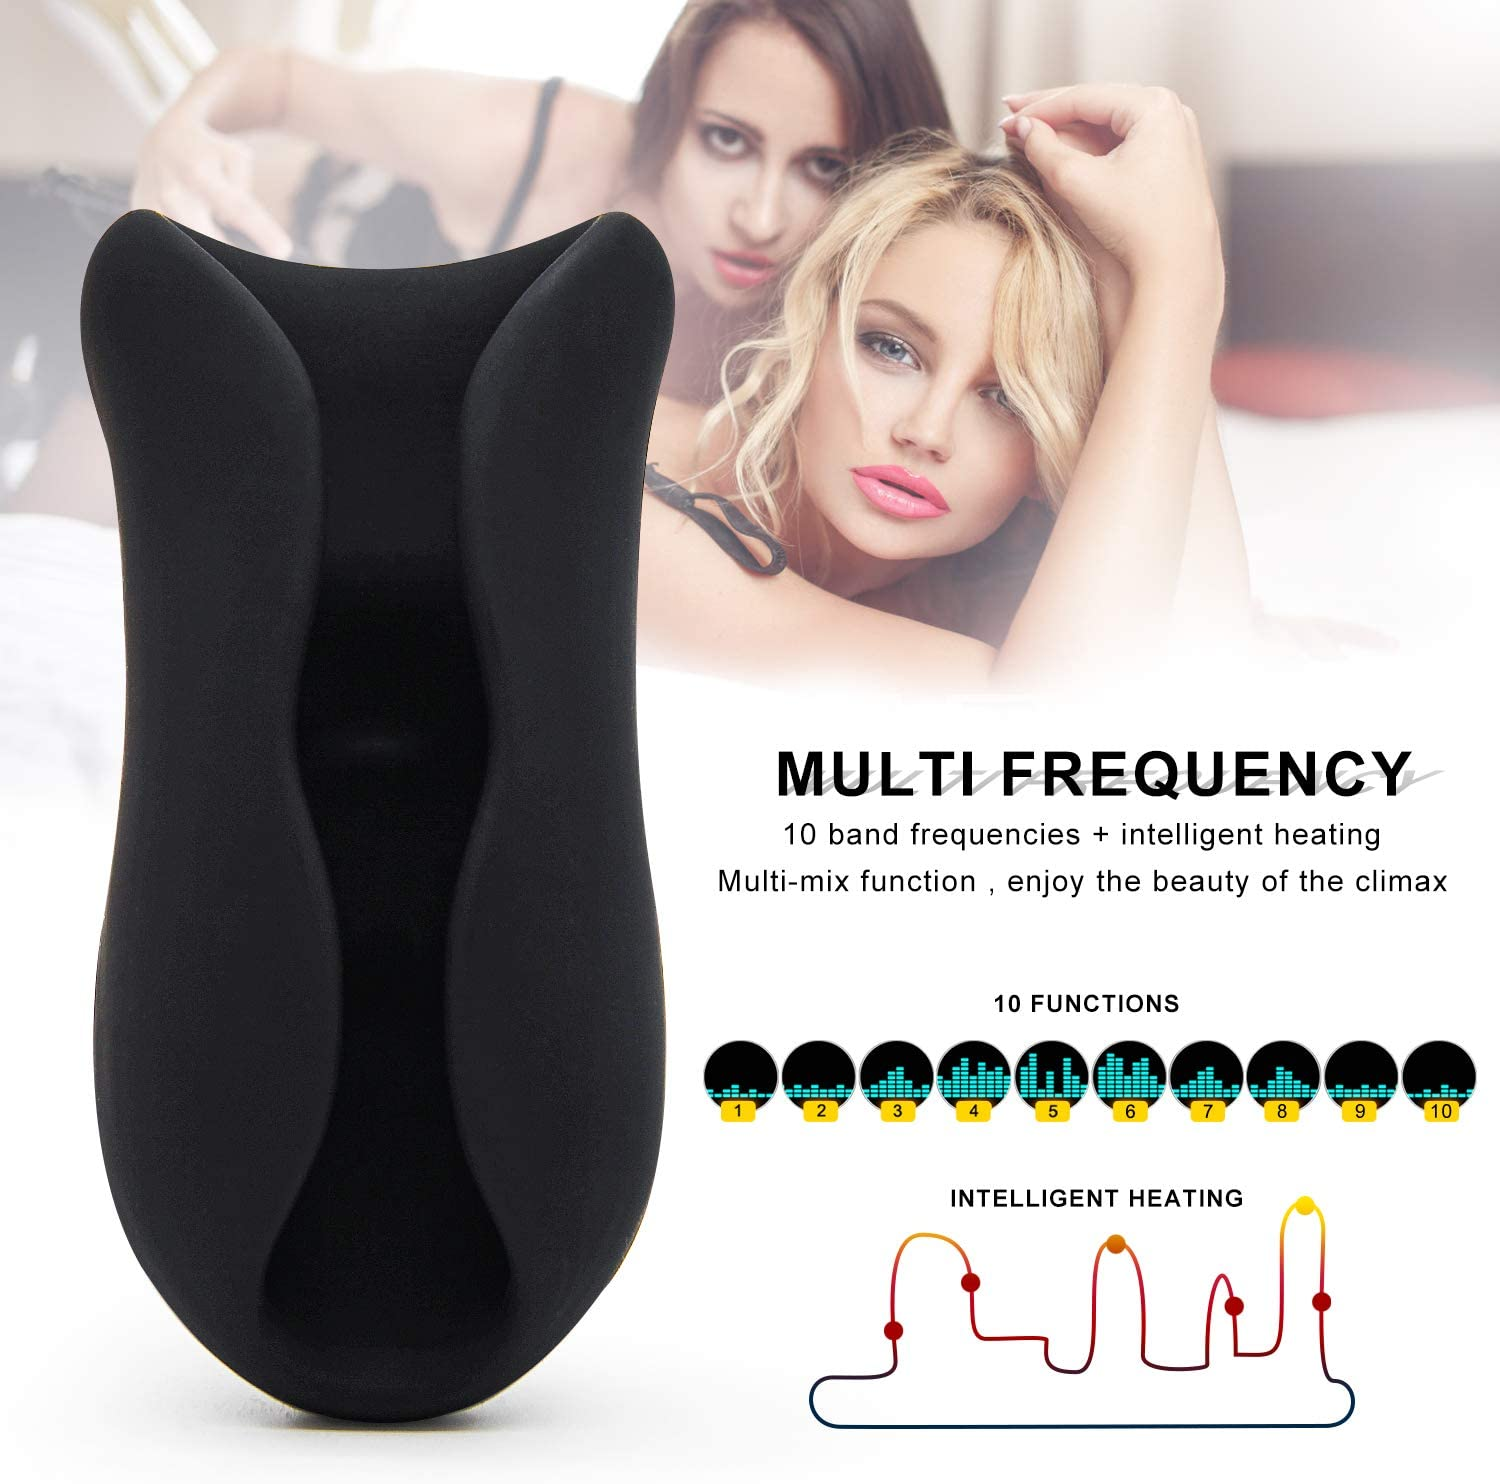 Handsfree Mástǚrbátor Pô`ckēt Pussycat Male-Mástǚrbátor Deep Throat Toys Automatic Heating with 7 Modes Male self-Pleasure Toys for Mens Realistic 3D Sex-y Underwear for Men T-Shirt